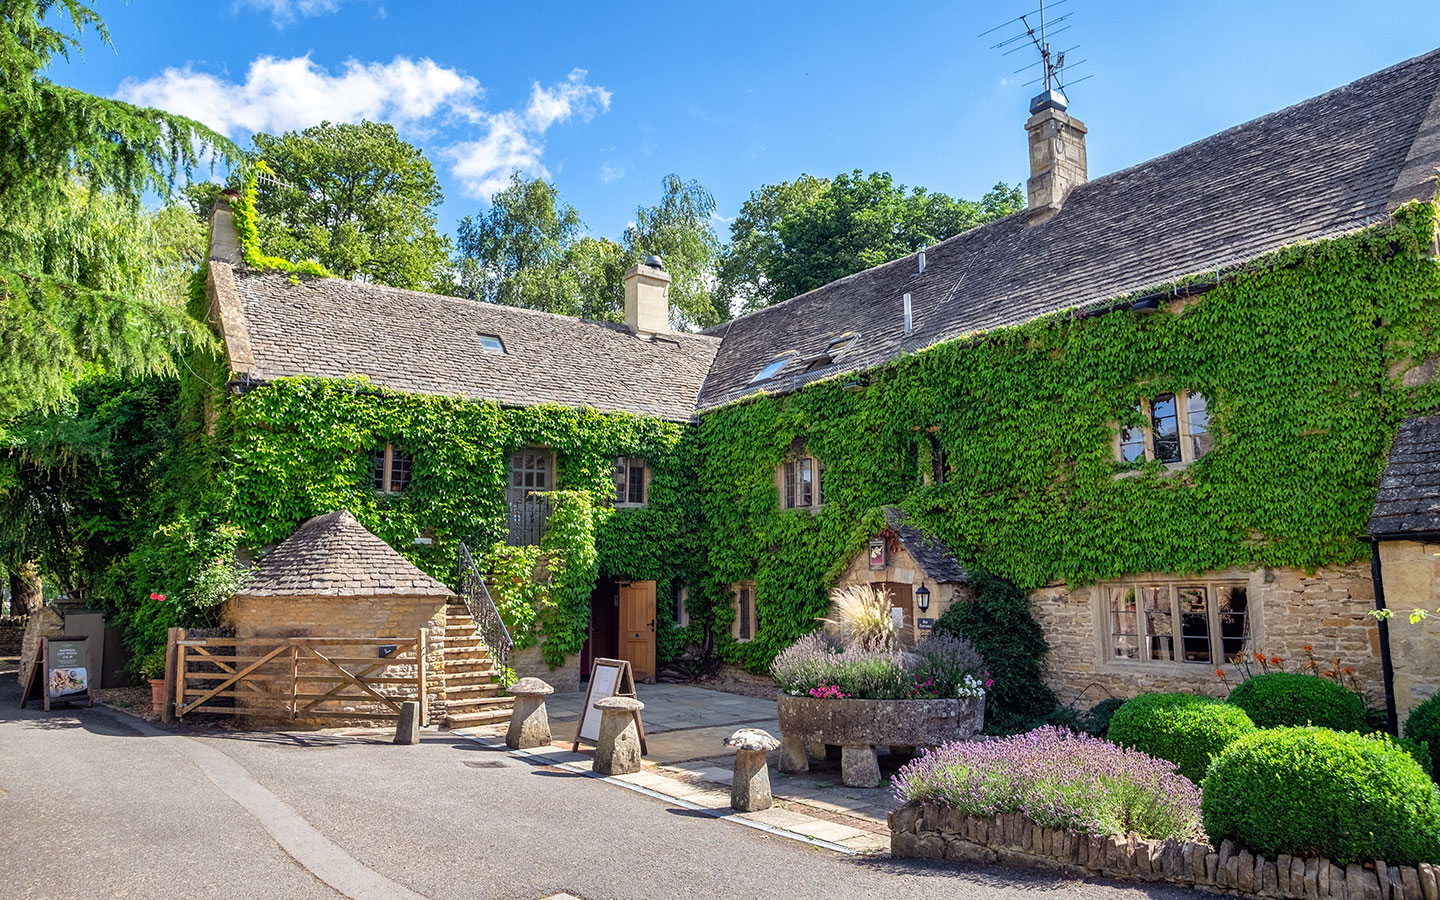 The Slaughters Country Inn in Lower Slaughter